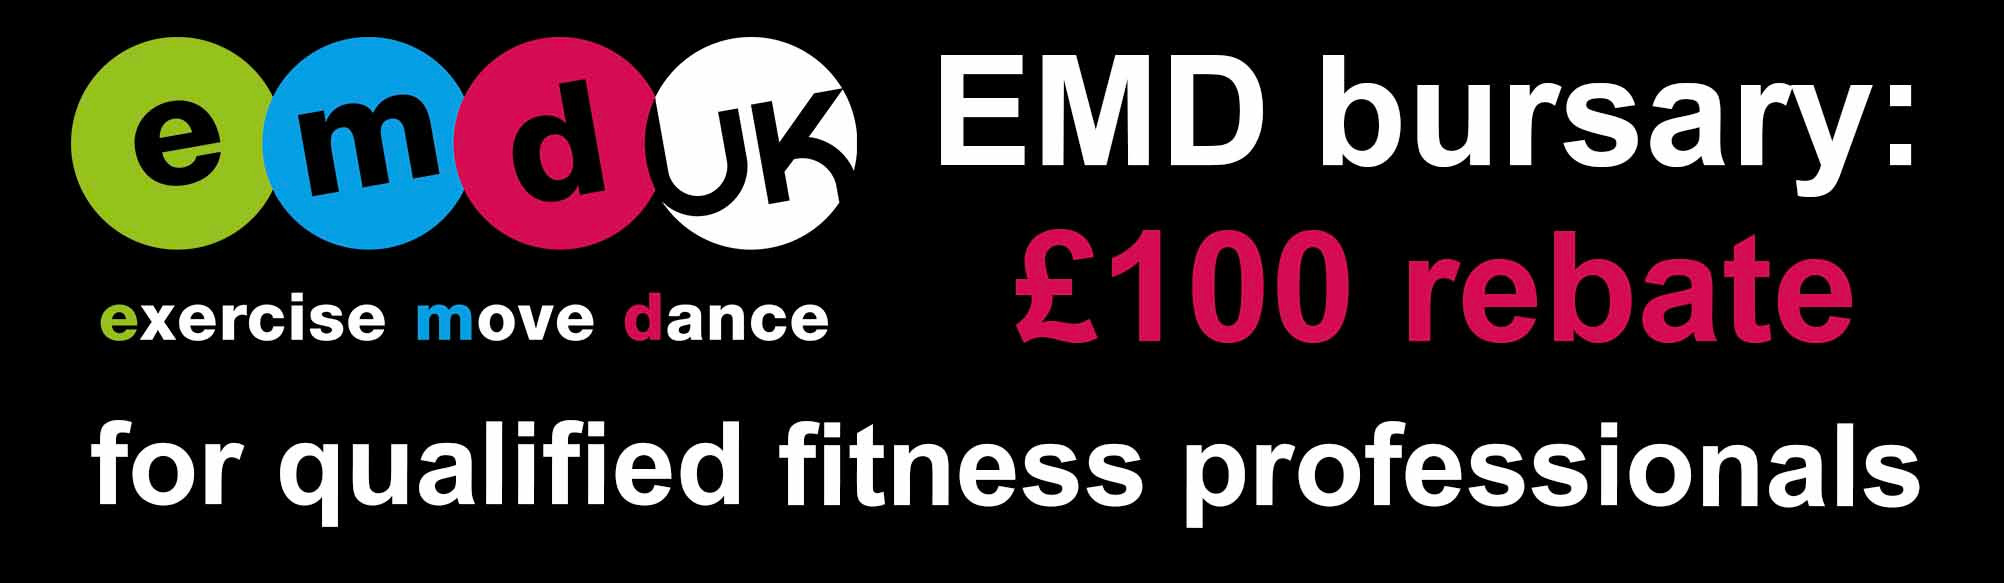 EMD-UK Bursary Rebate